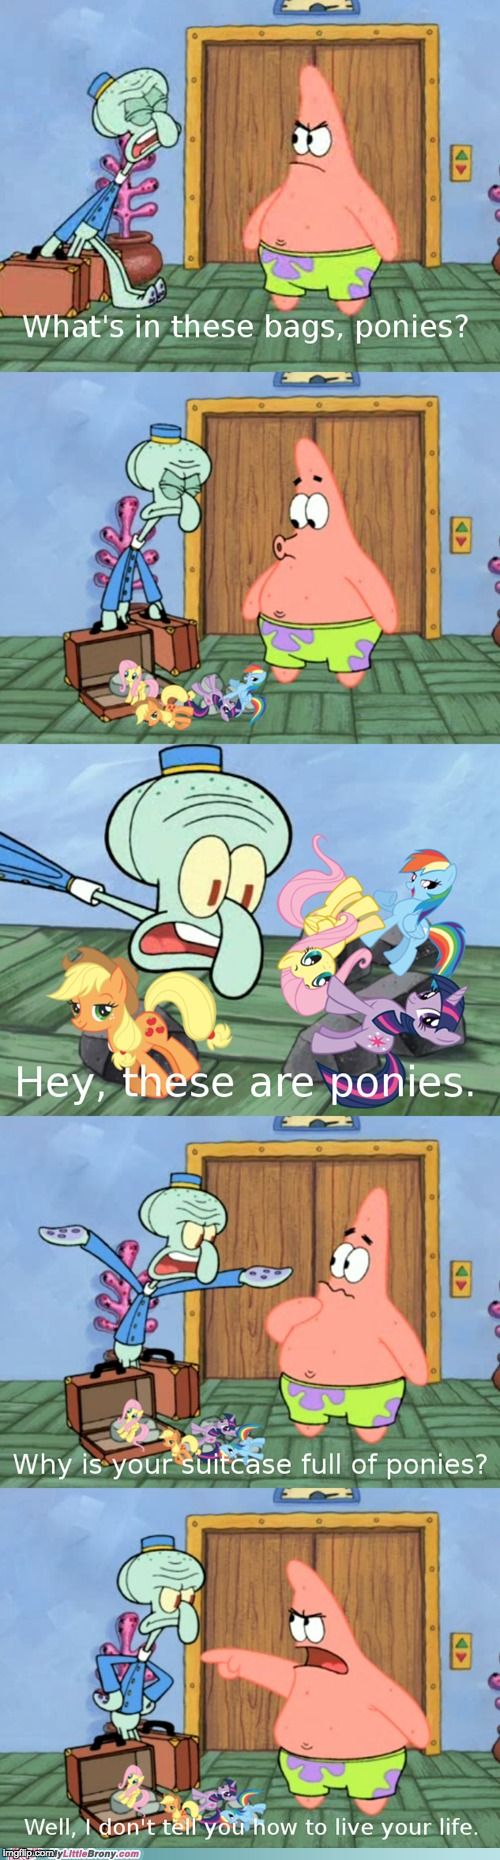 image tagged in memes,my little pony,patrick star,squidward | made w/ Imgflip meme maker